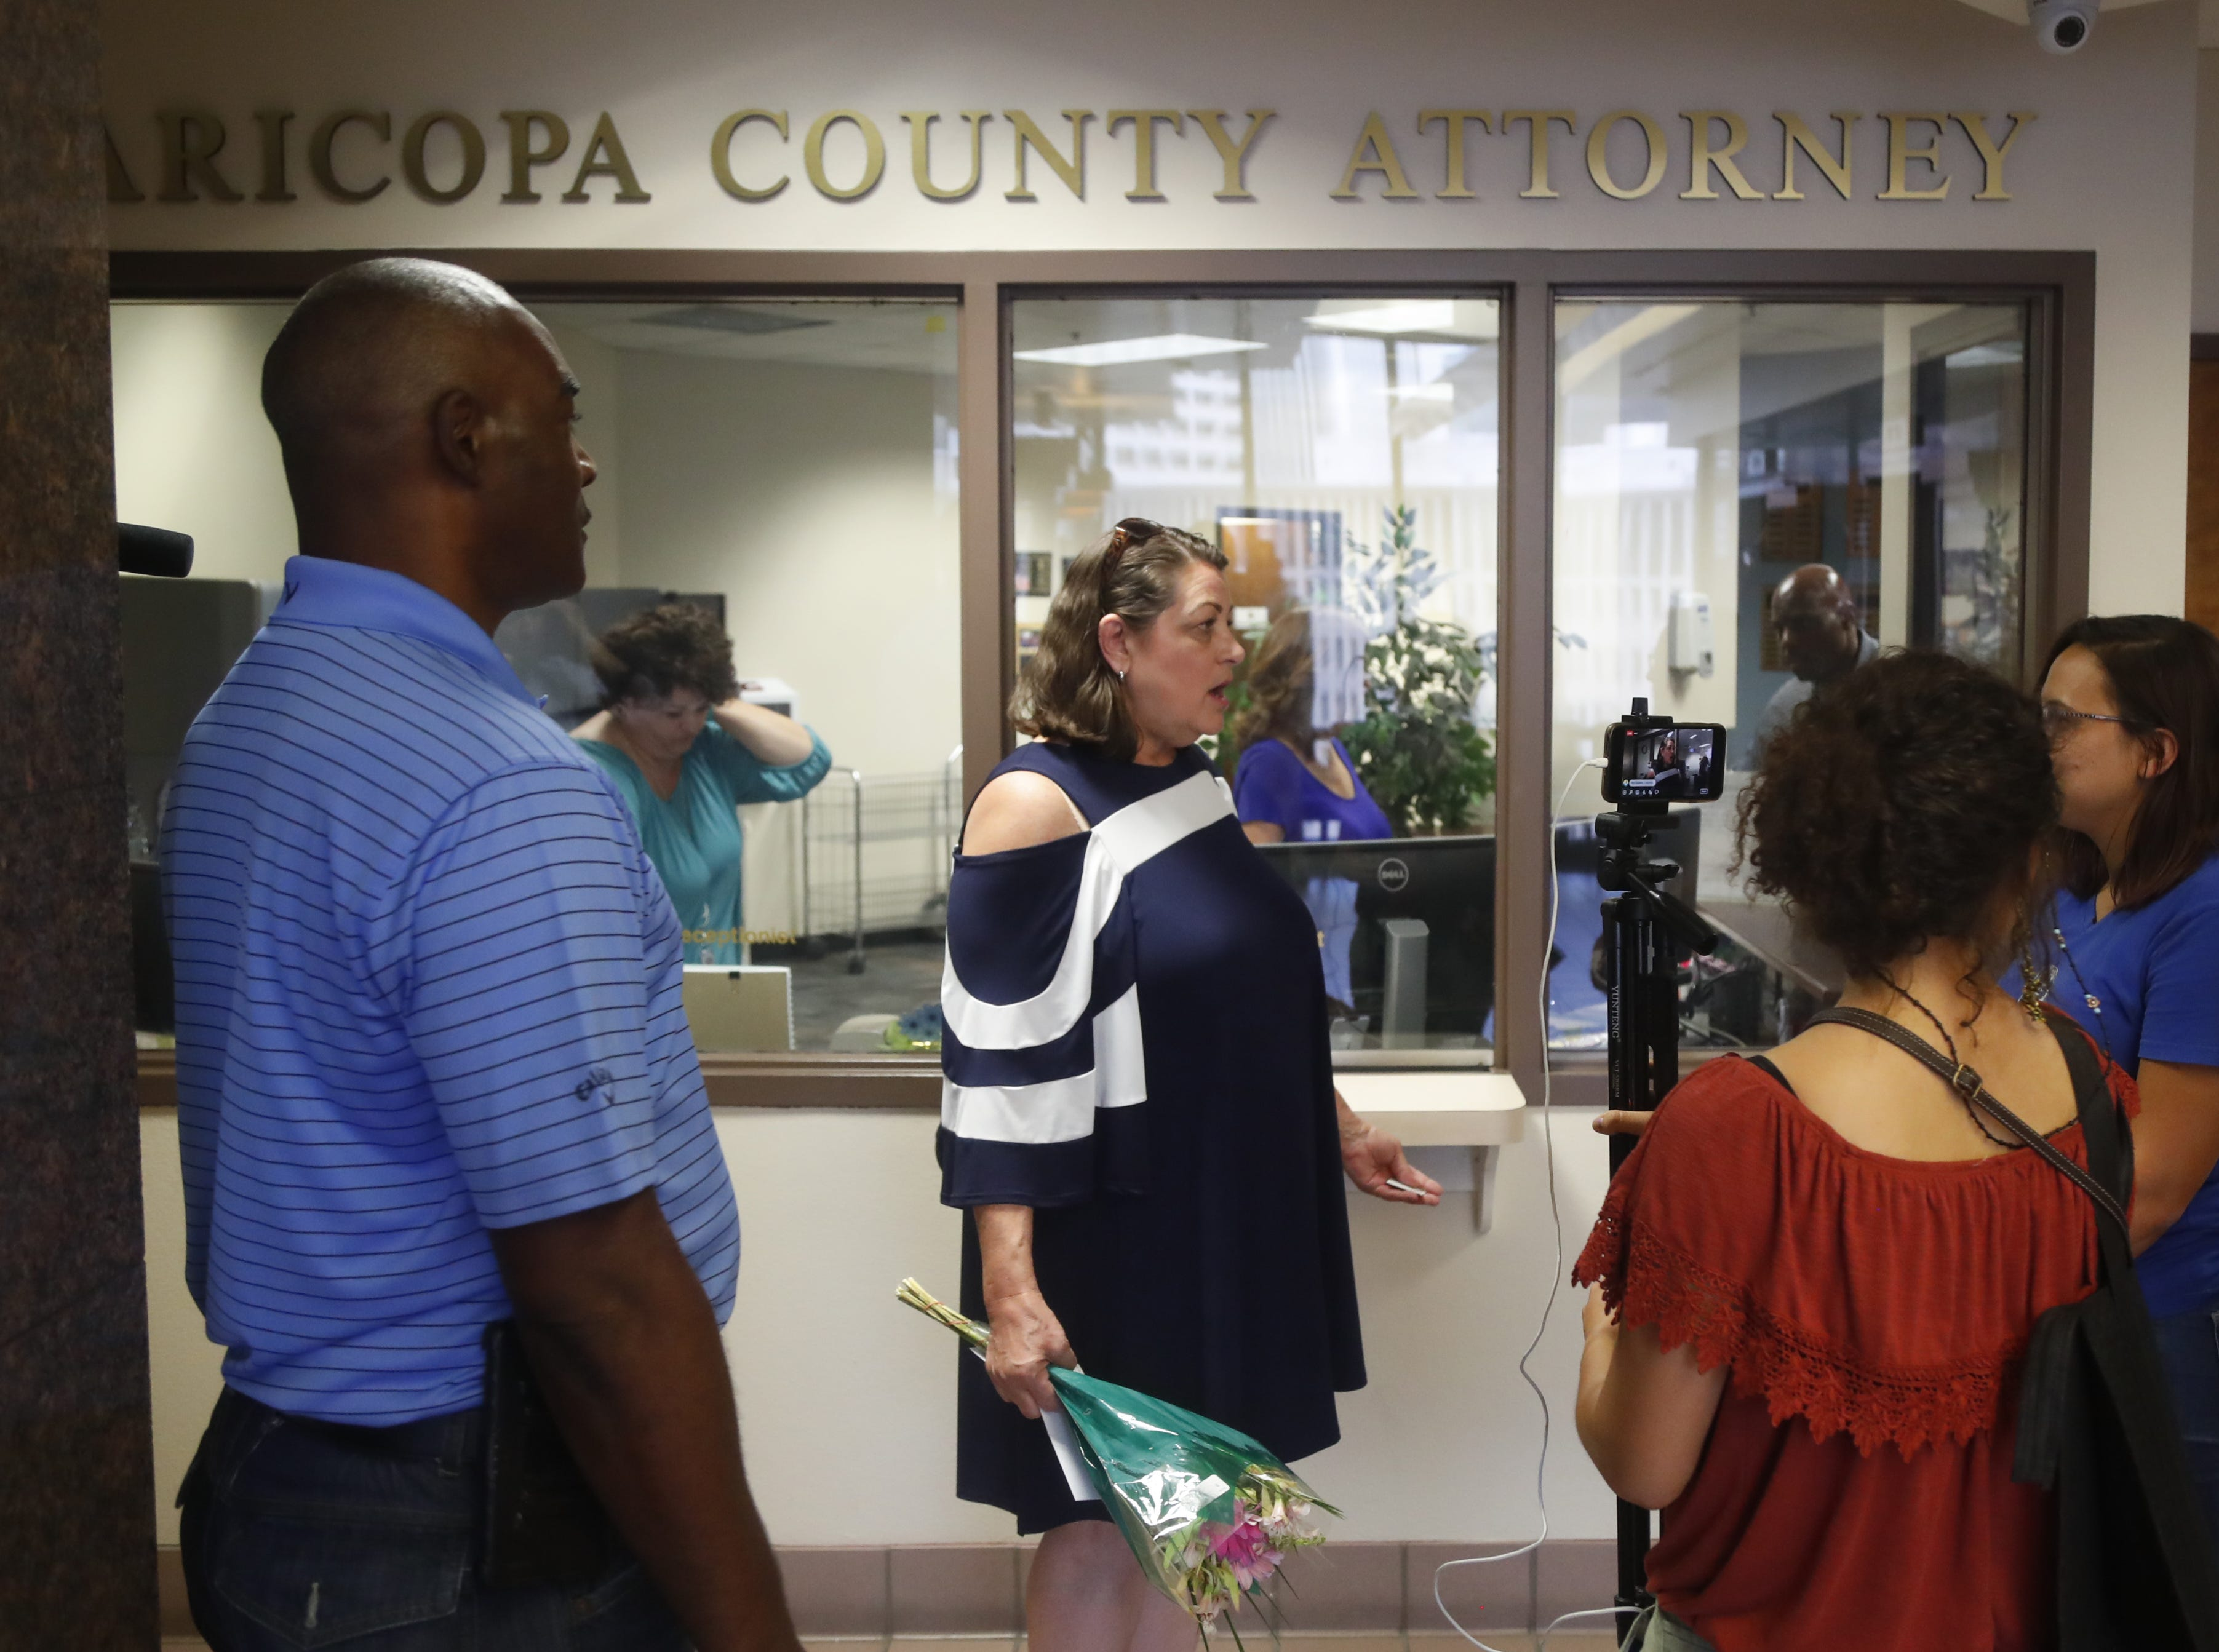 Chimene Hawes (L) speaks with Nicole Hale as they wait to speak with Maricopa County Attorney Bill Montgomery during a protest against cash bail at the Maricopa County Attorney's office in Phoenix on May 9, 2019.